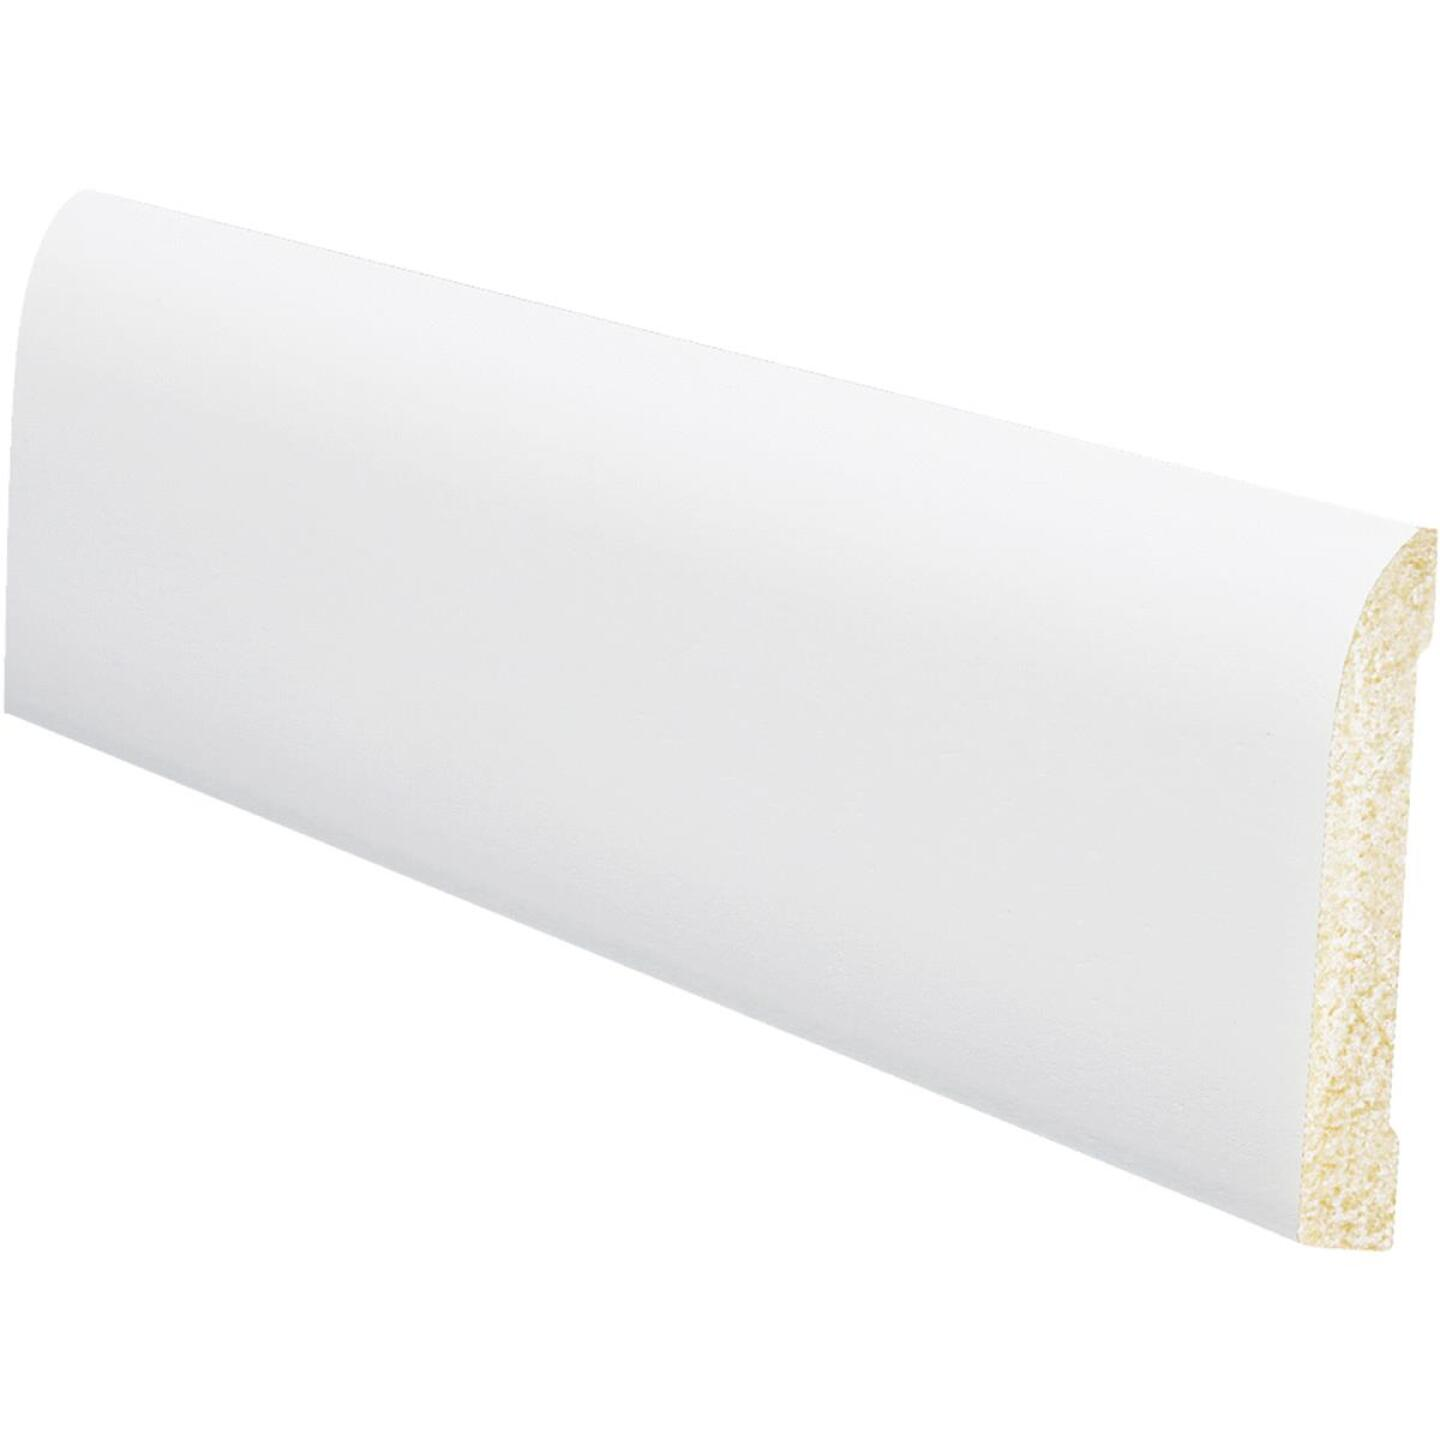 Inteplast Building Products 7/16 In. W. x 3-3/16 In. H. x 8 Ft. L. Crystal White Polystyrene Ranch Base Molding Image 1